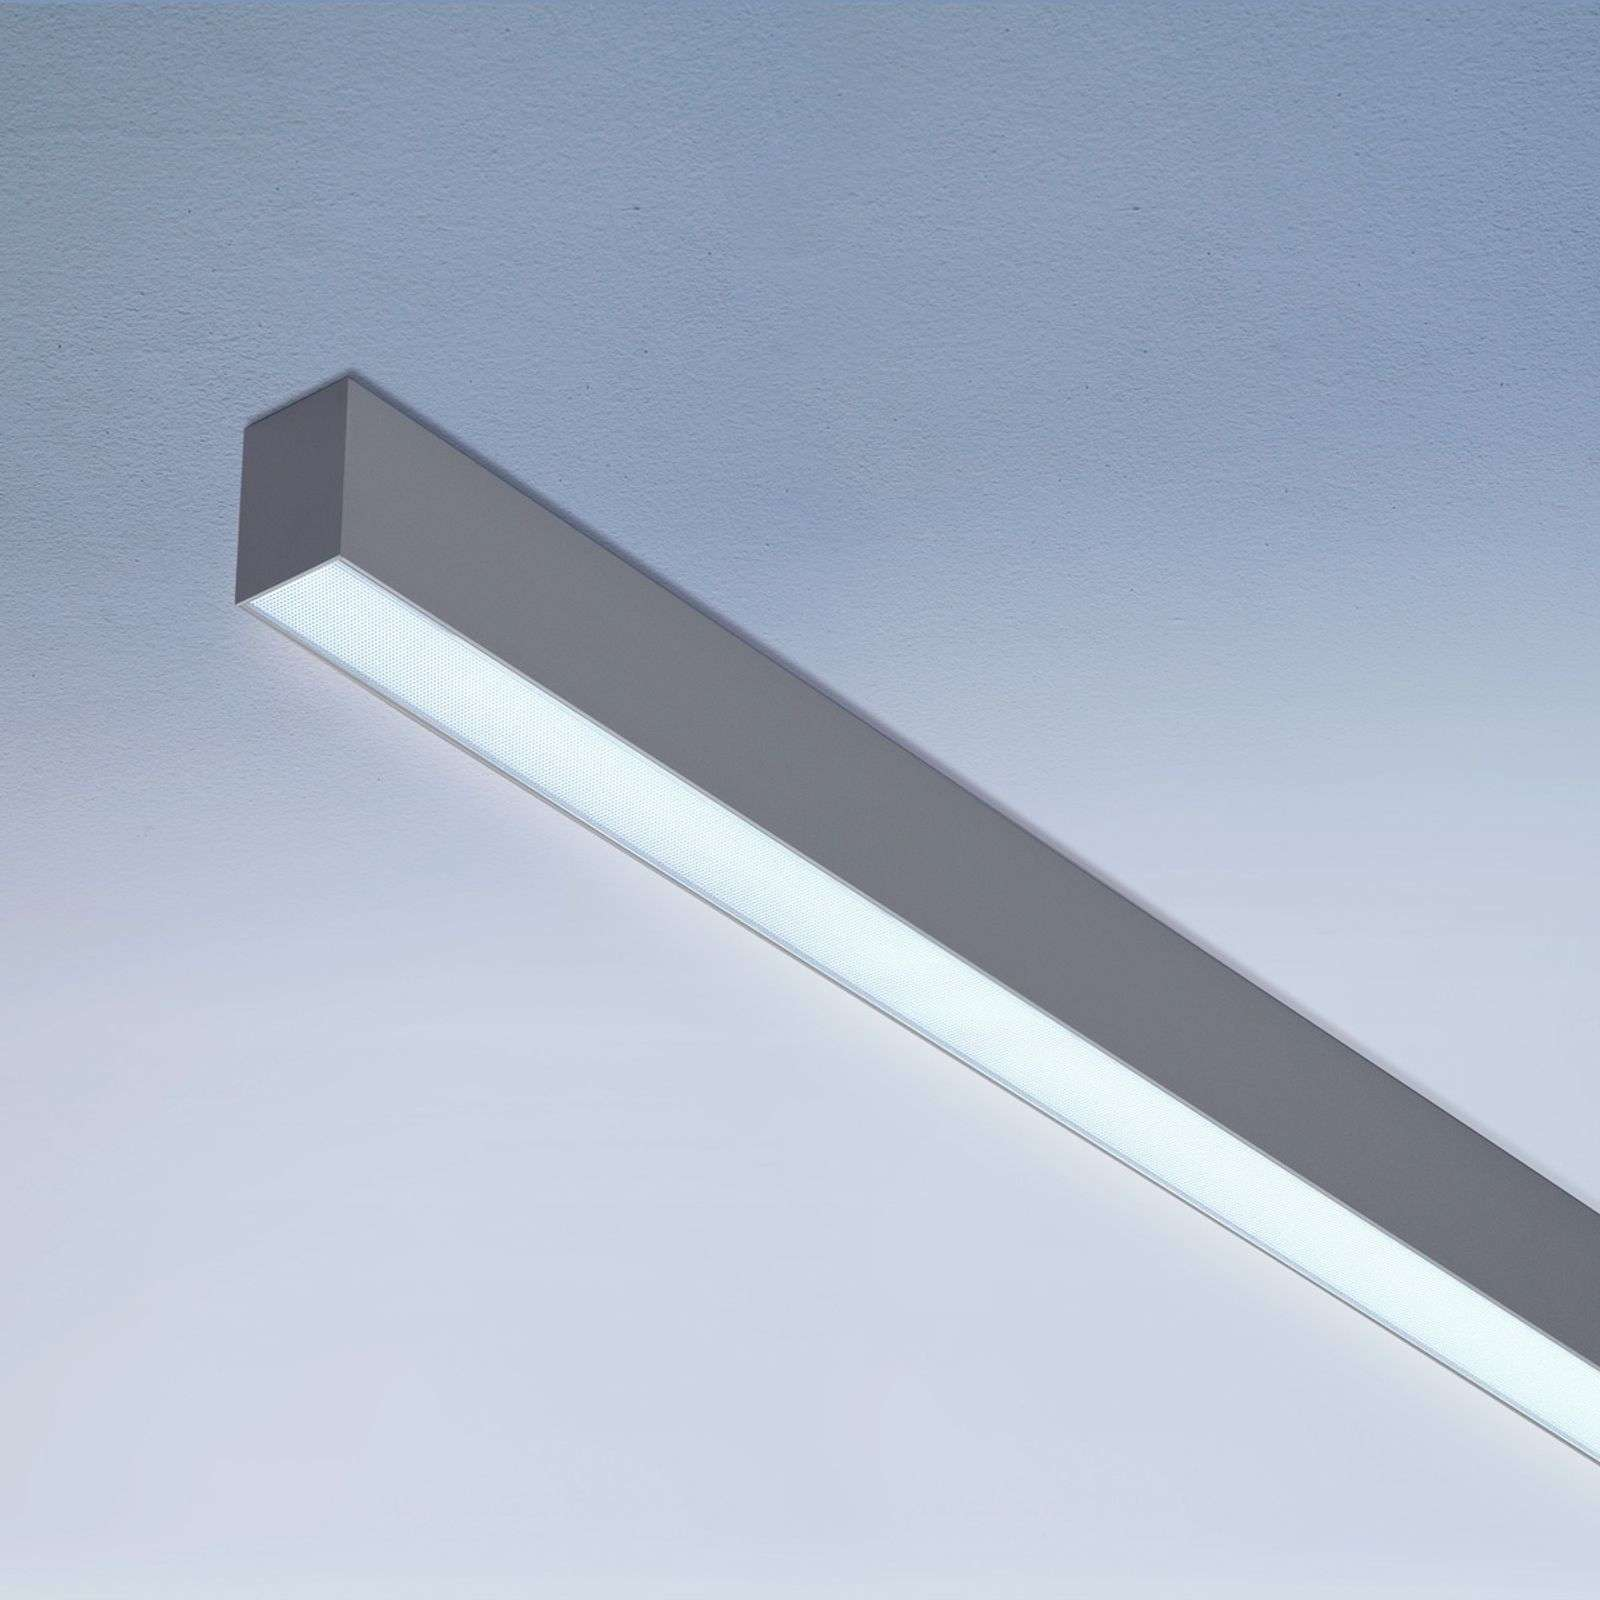 Medium Power - applique LED Matric-A3 235 cm